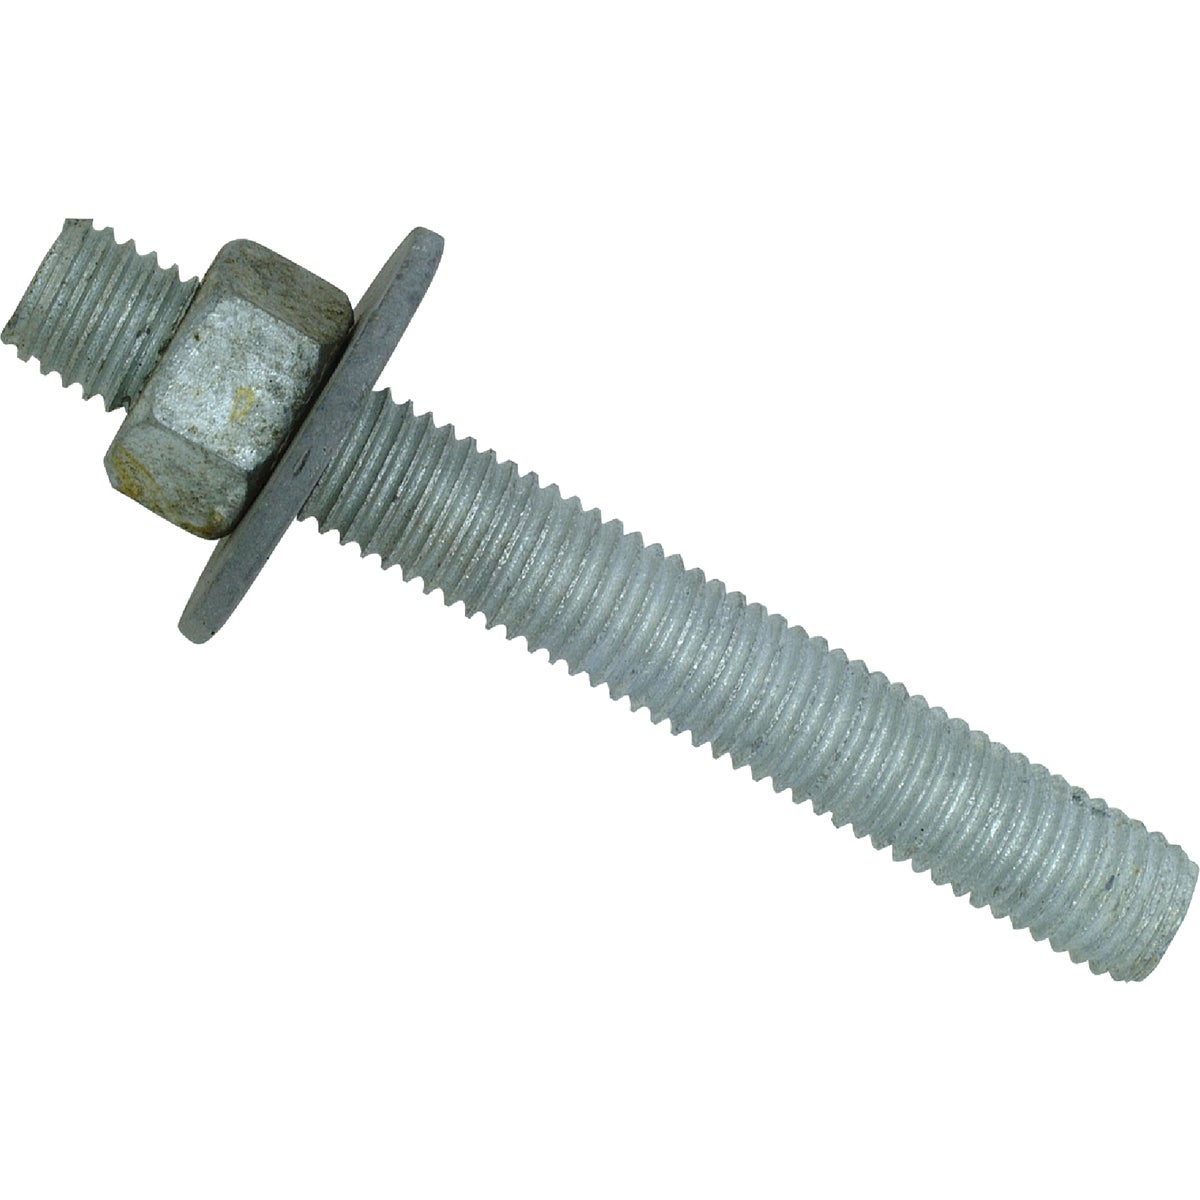 #5X5 HDG RETROFIT BOLT - RFB#5X5HDG-R by Simpson Strong Tie